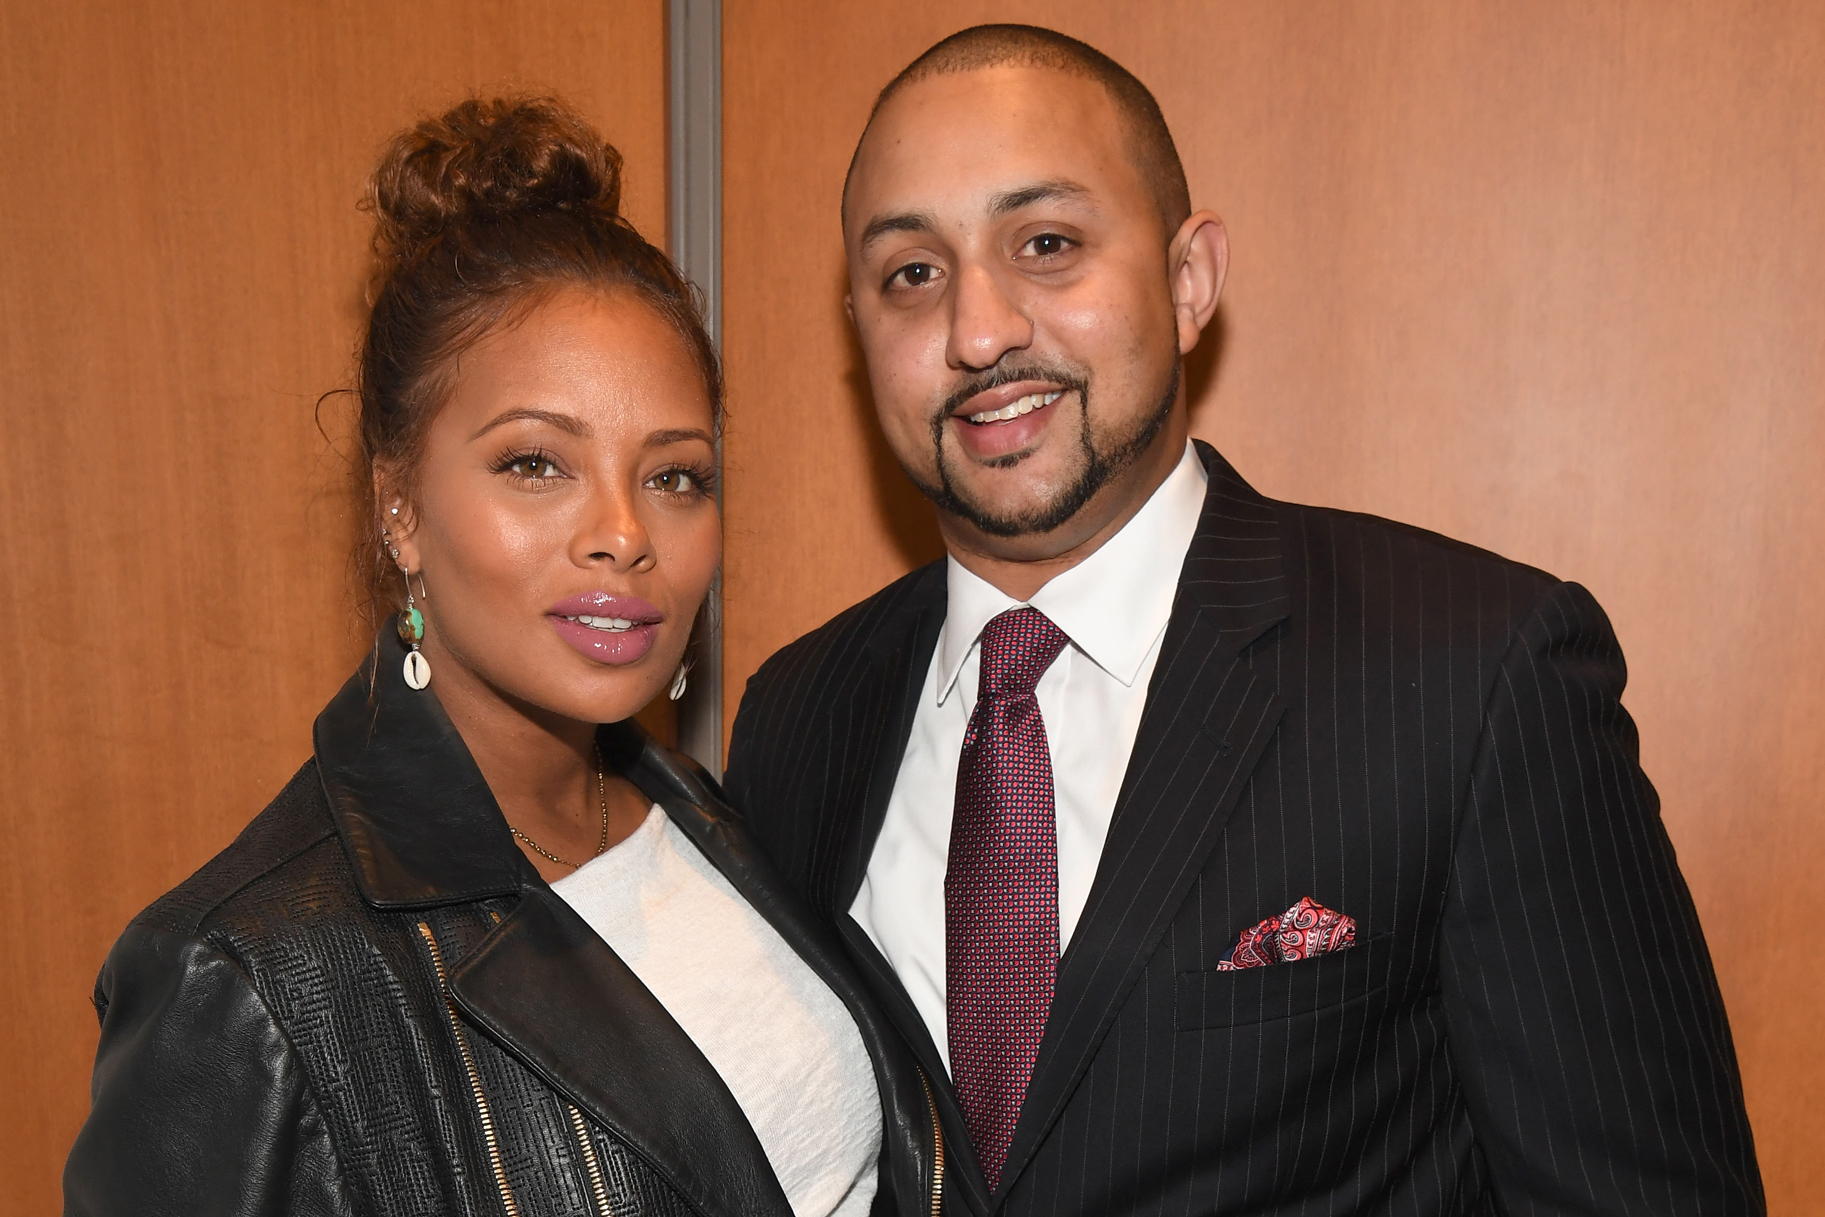 eva-marcille-praises-mike-sterlings-speech-check-out-what-he-has-to-say-about-derek-chauvin